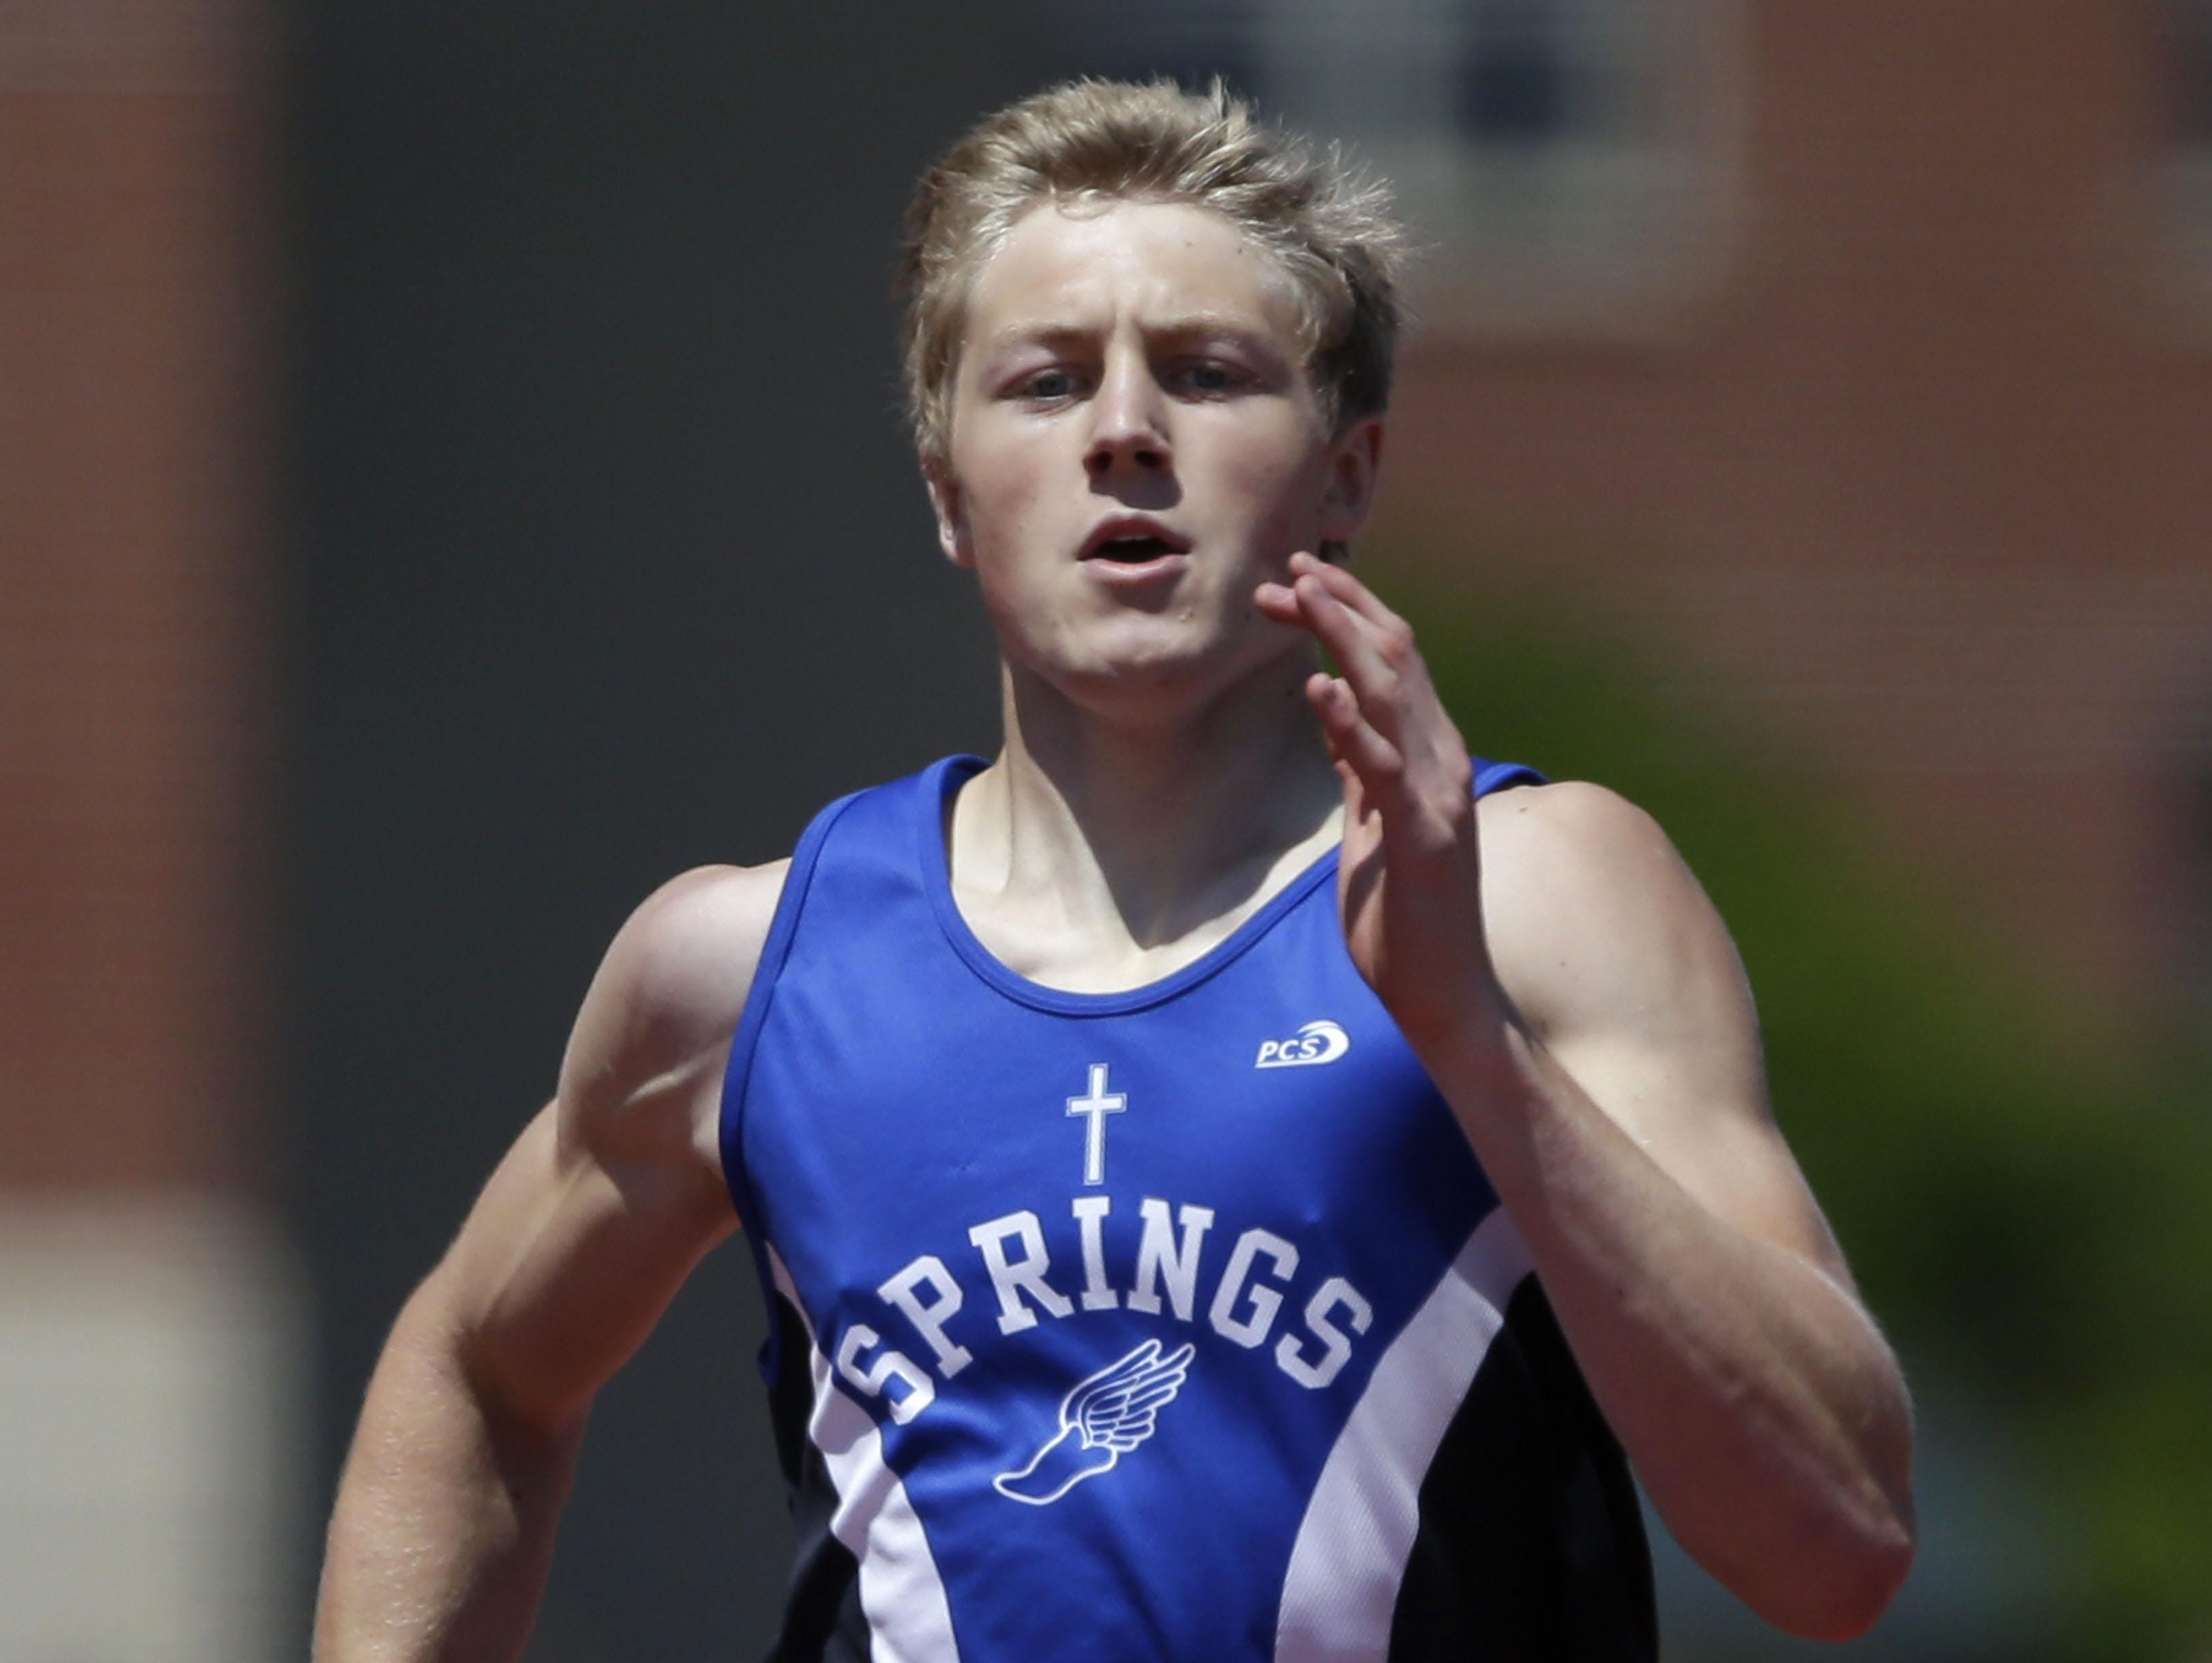 Sam Spranger of St. Mary's Springs races to the finish line to win the Division 3 400 meters on Saturday.